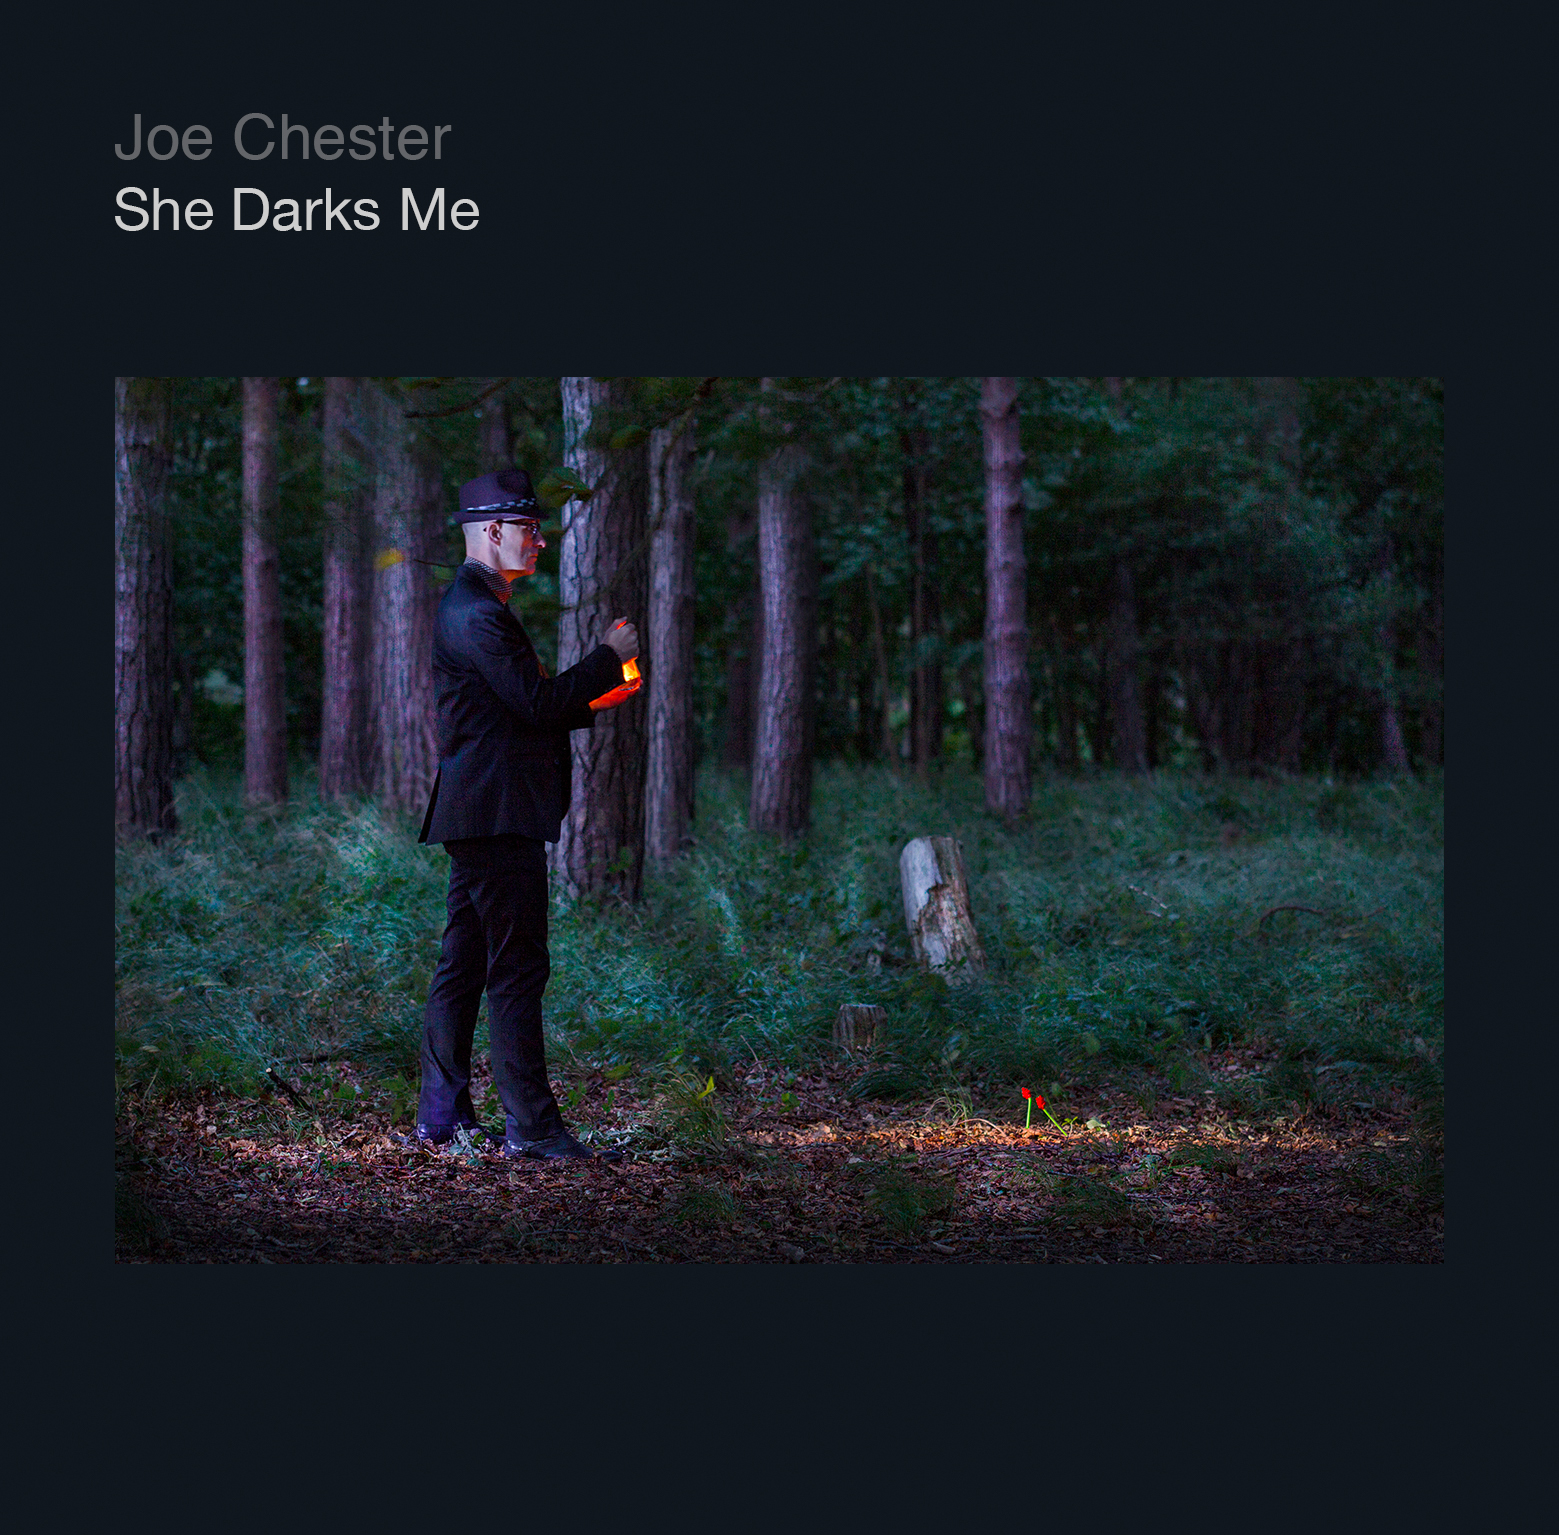 BOHCD2009 - Joe Chester - She Darks Me